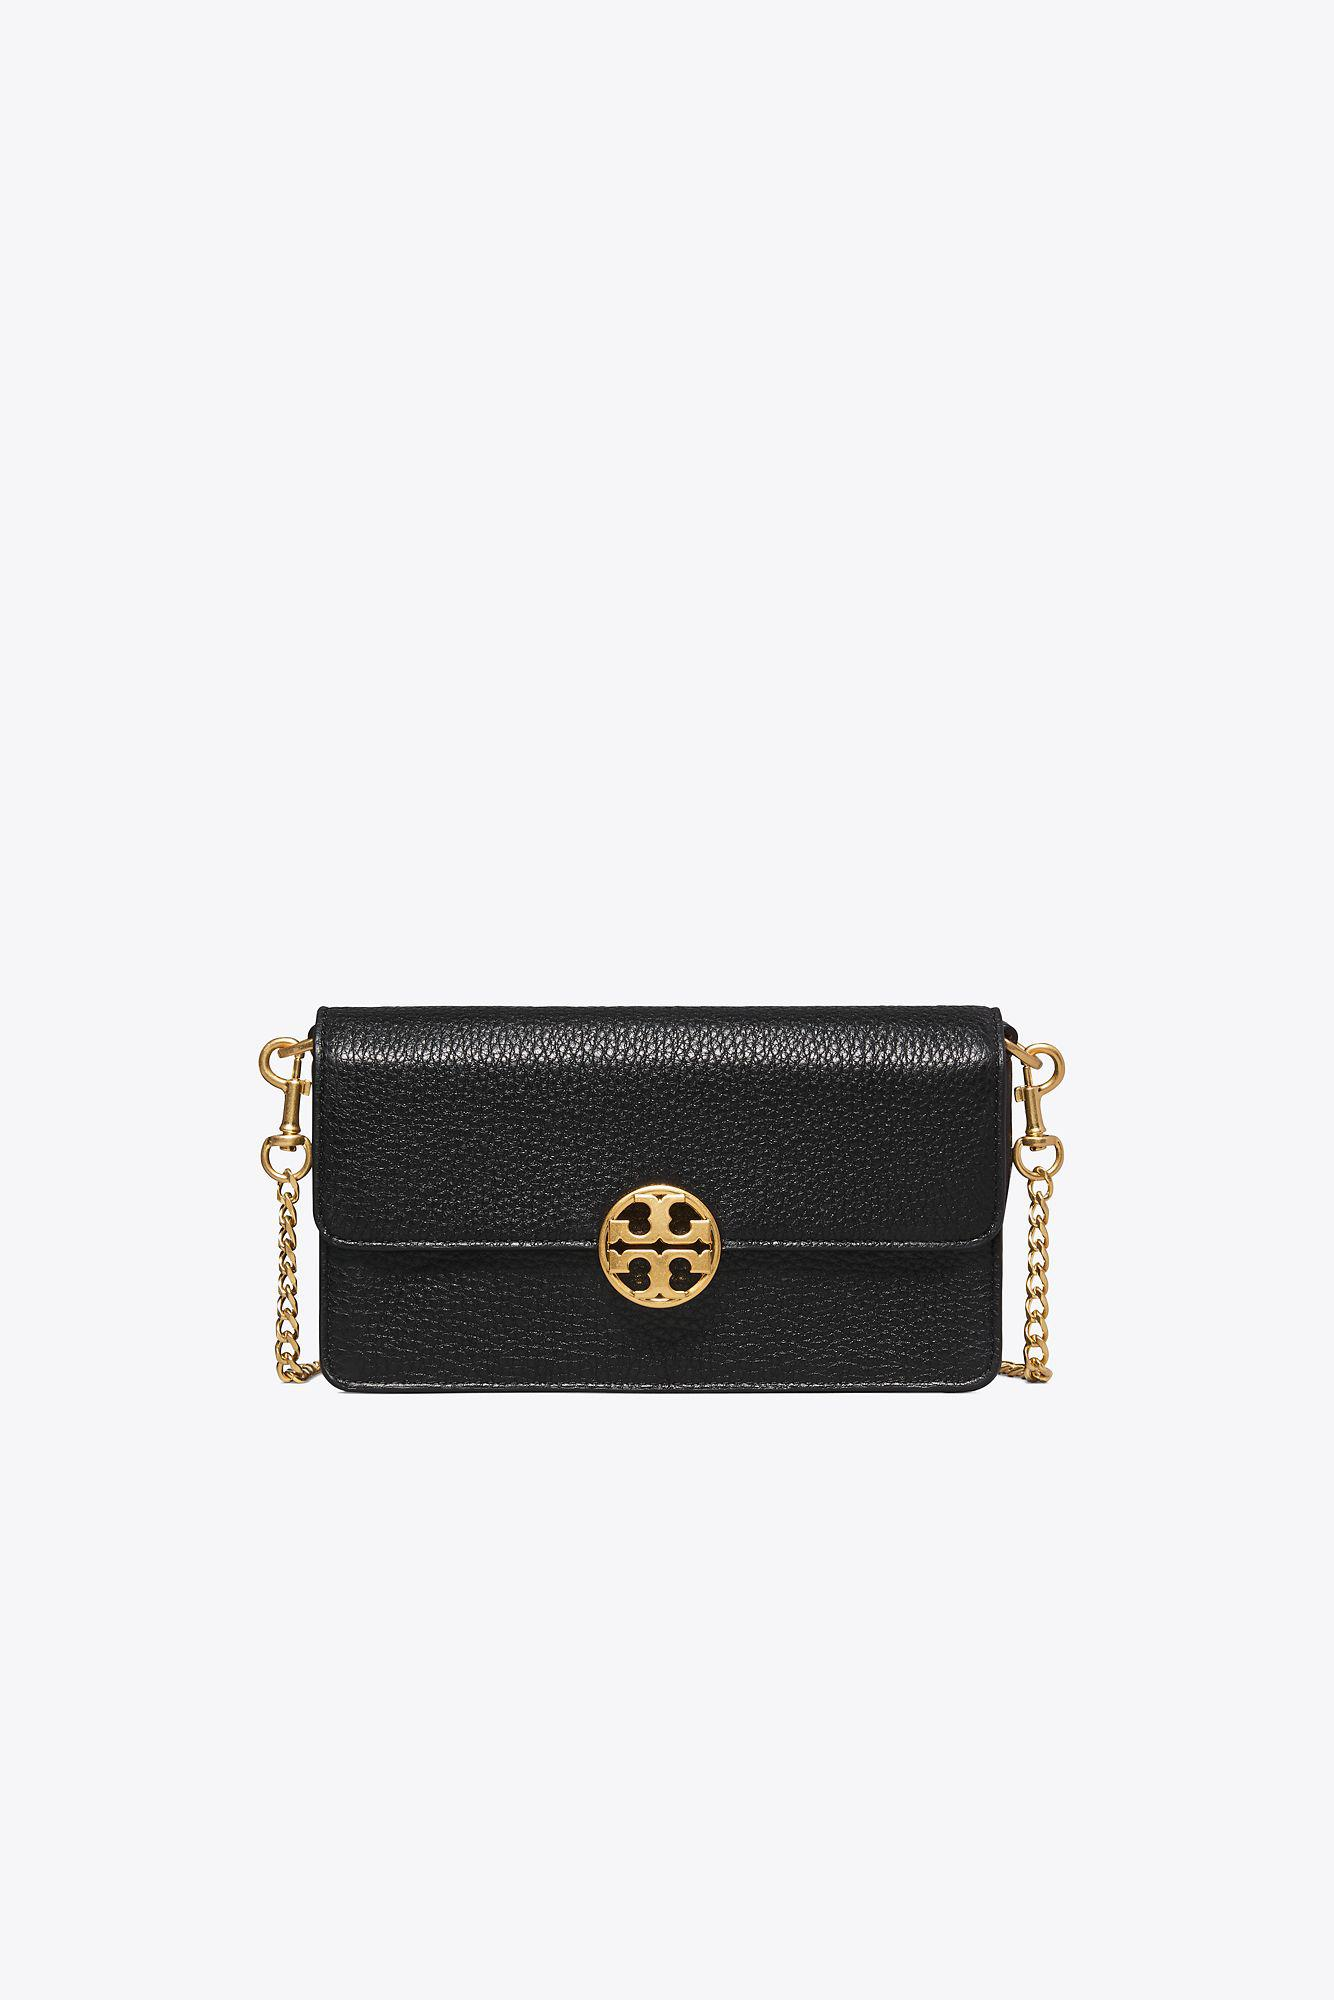 c2f6150303 Tory Burch Chelsea Chain Pouch in Black - Save 19% - Lyst